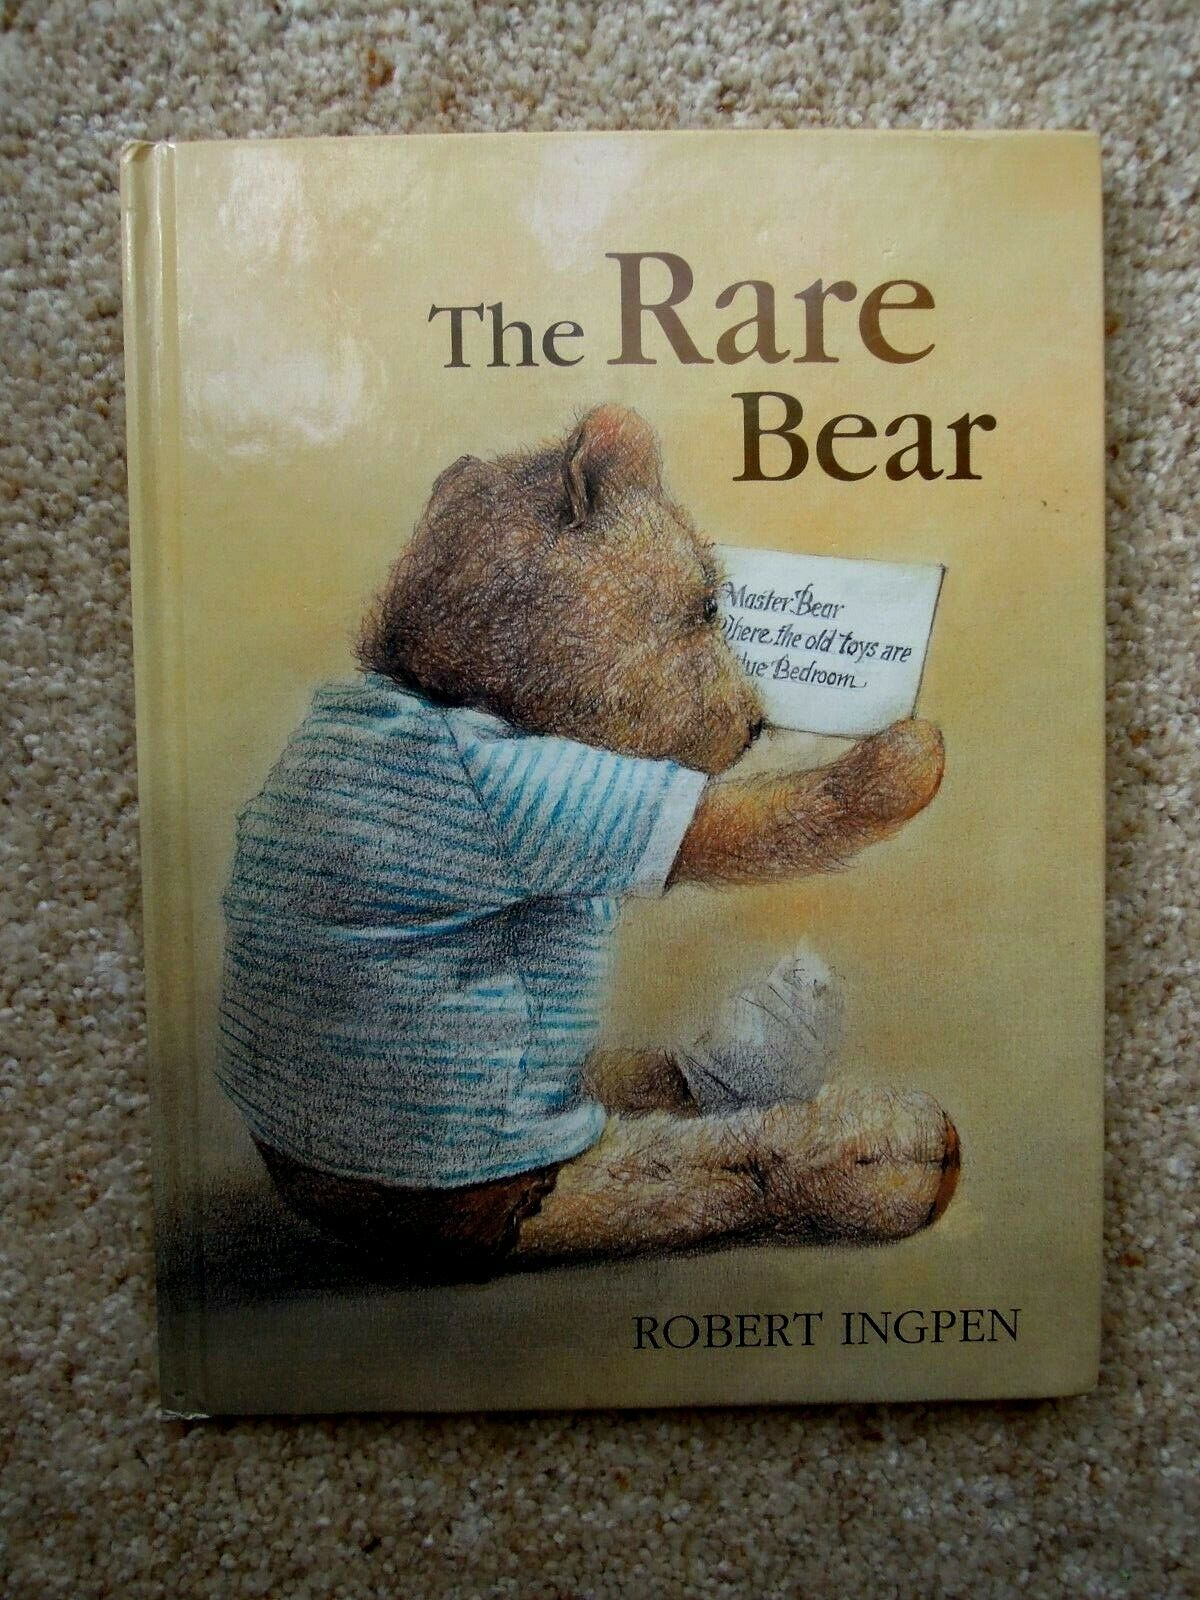 ROBERT INGPEN – The Rare Bear – First Edition H/c 2004 – LIKE NEW |